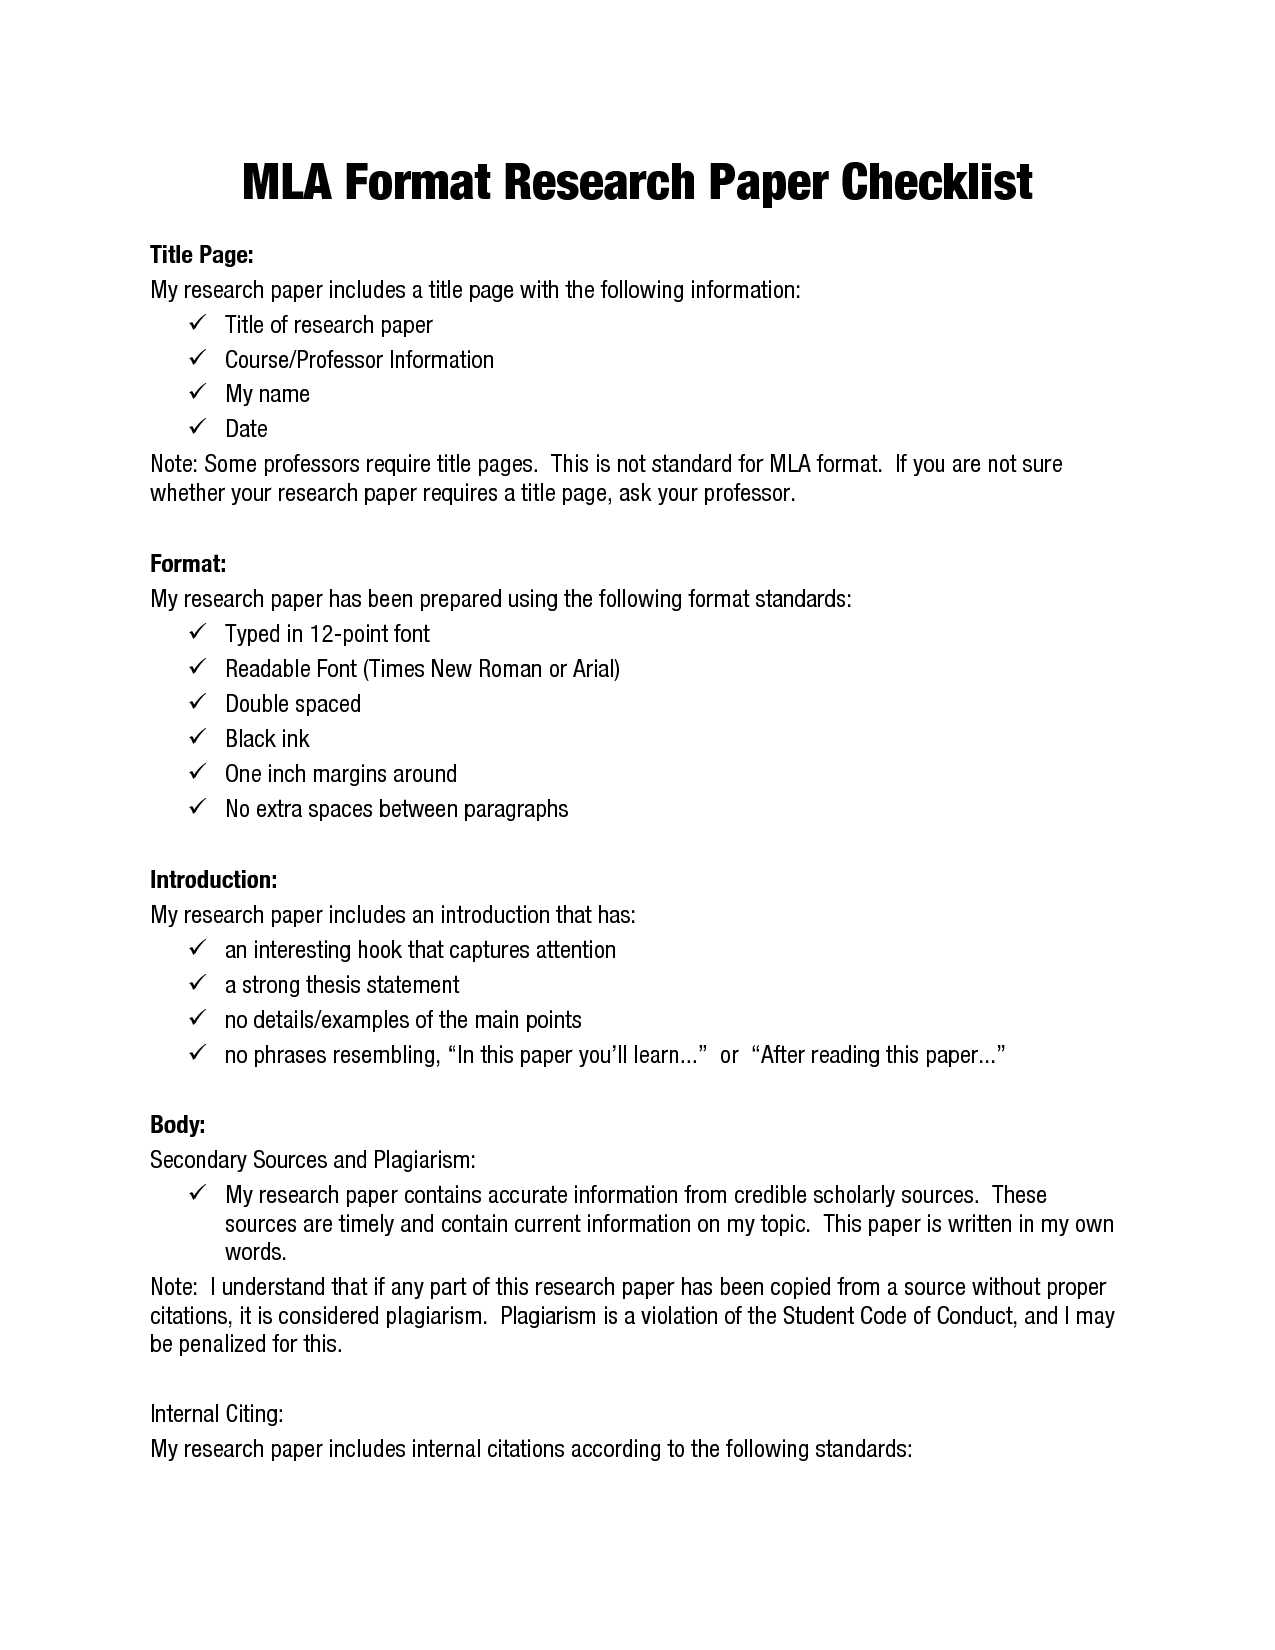 004 How Do You Cite Research Paper In Mla Format Imposing A Website To Things Full